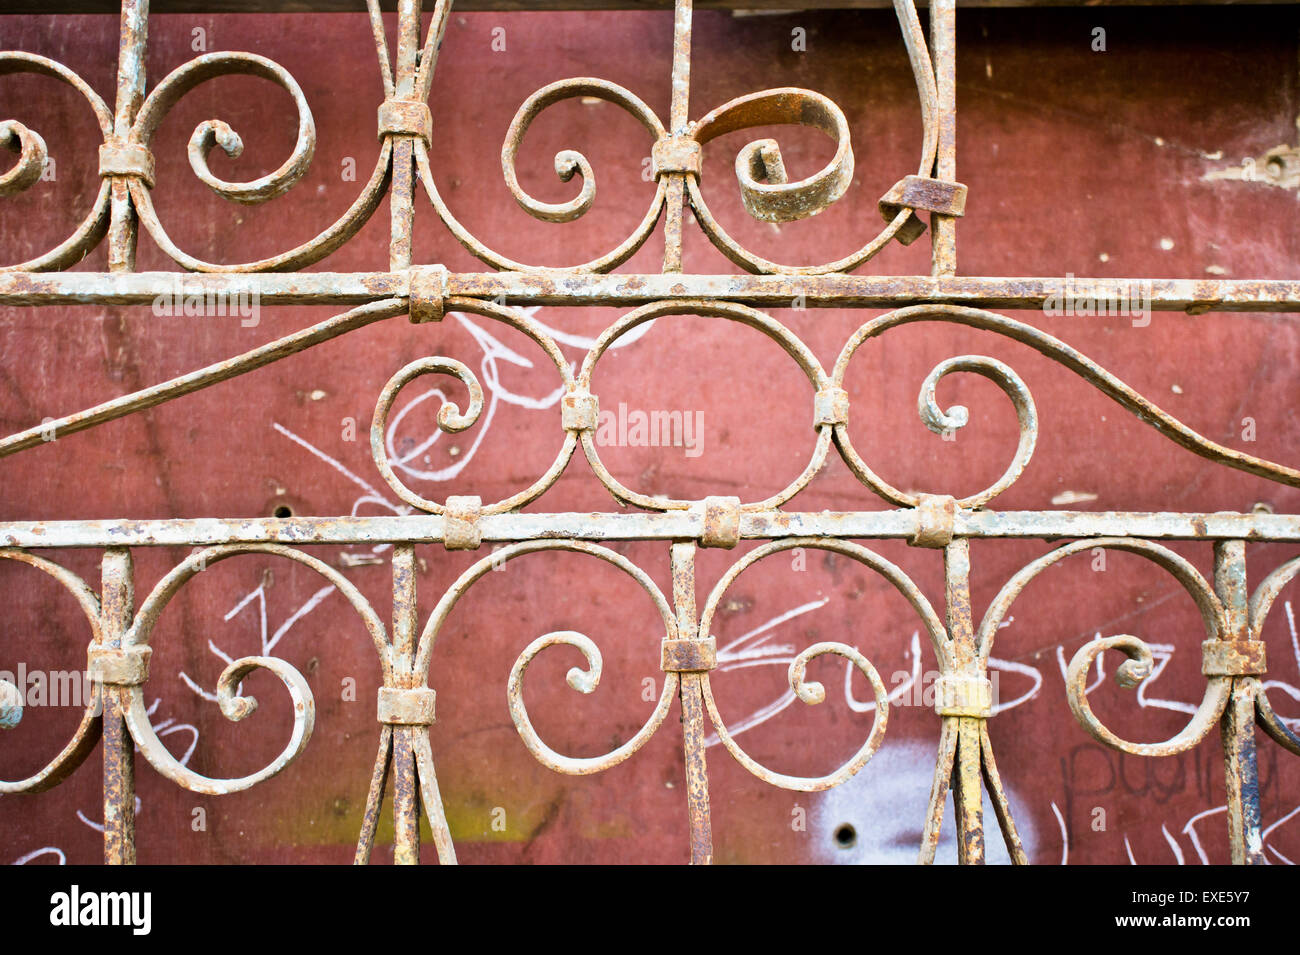 Part of an old ornate metal gate Stock Photo